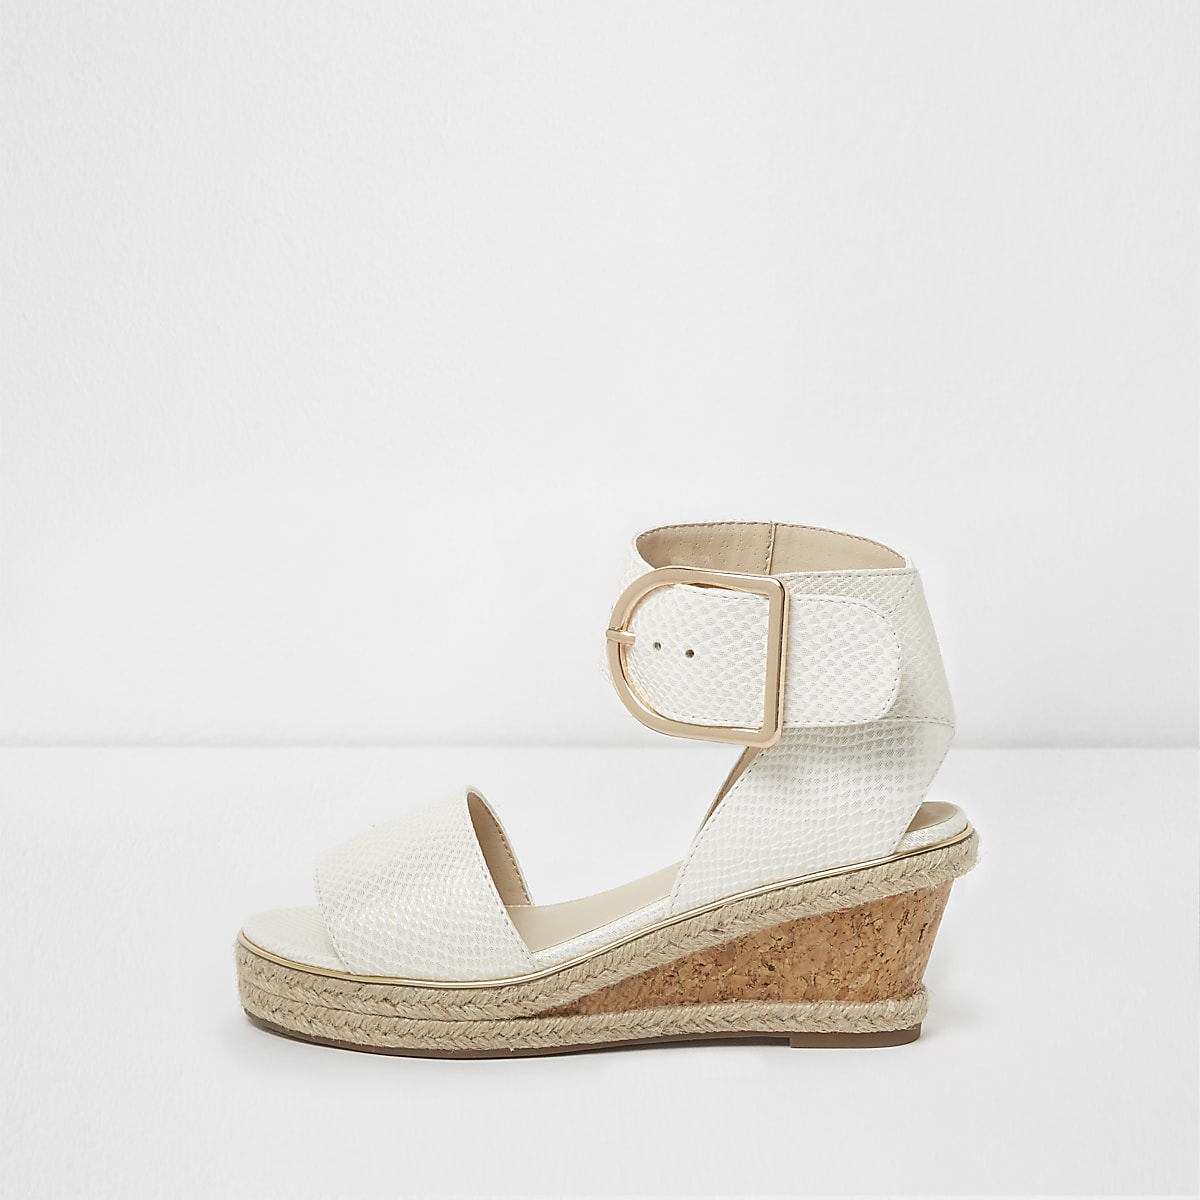 570903fcbc0 Girls white snake embossed espadrille wedges - Sandals - Footwear - girls